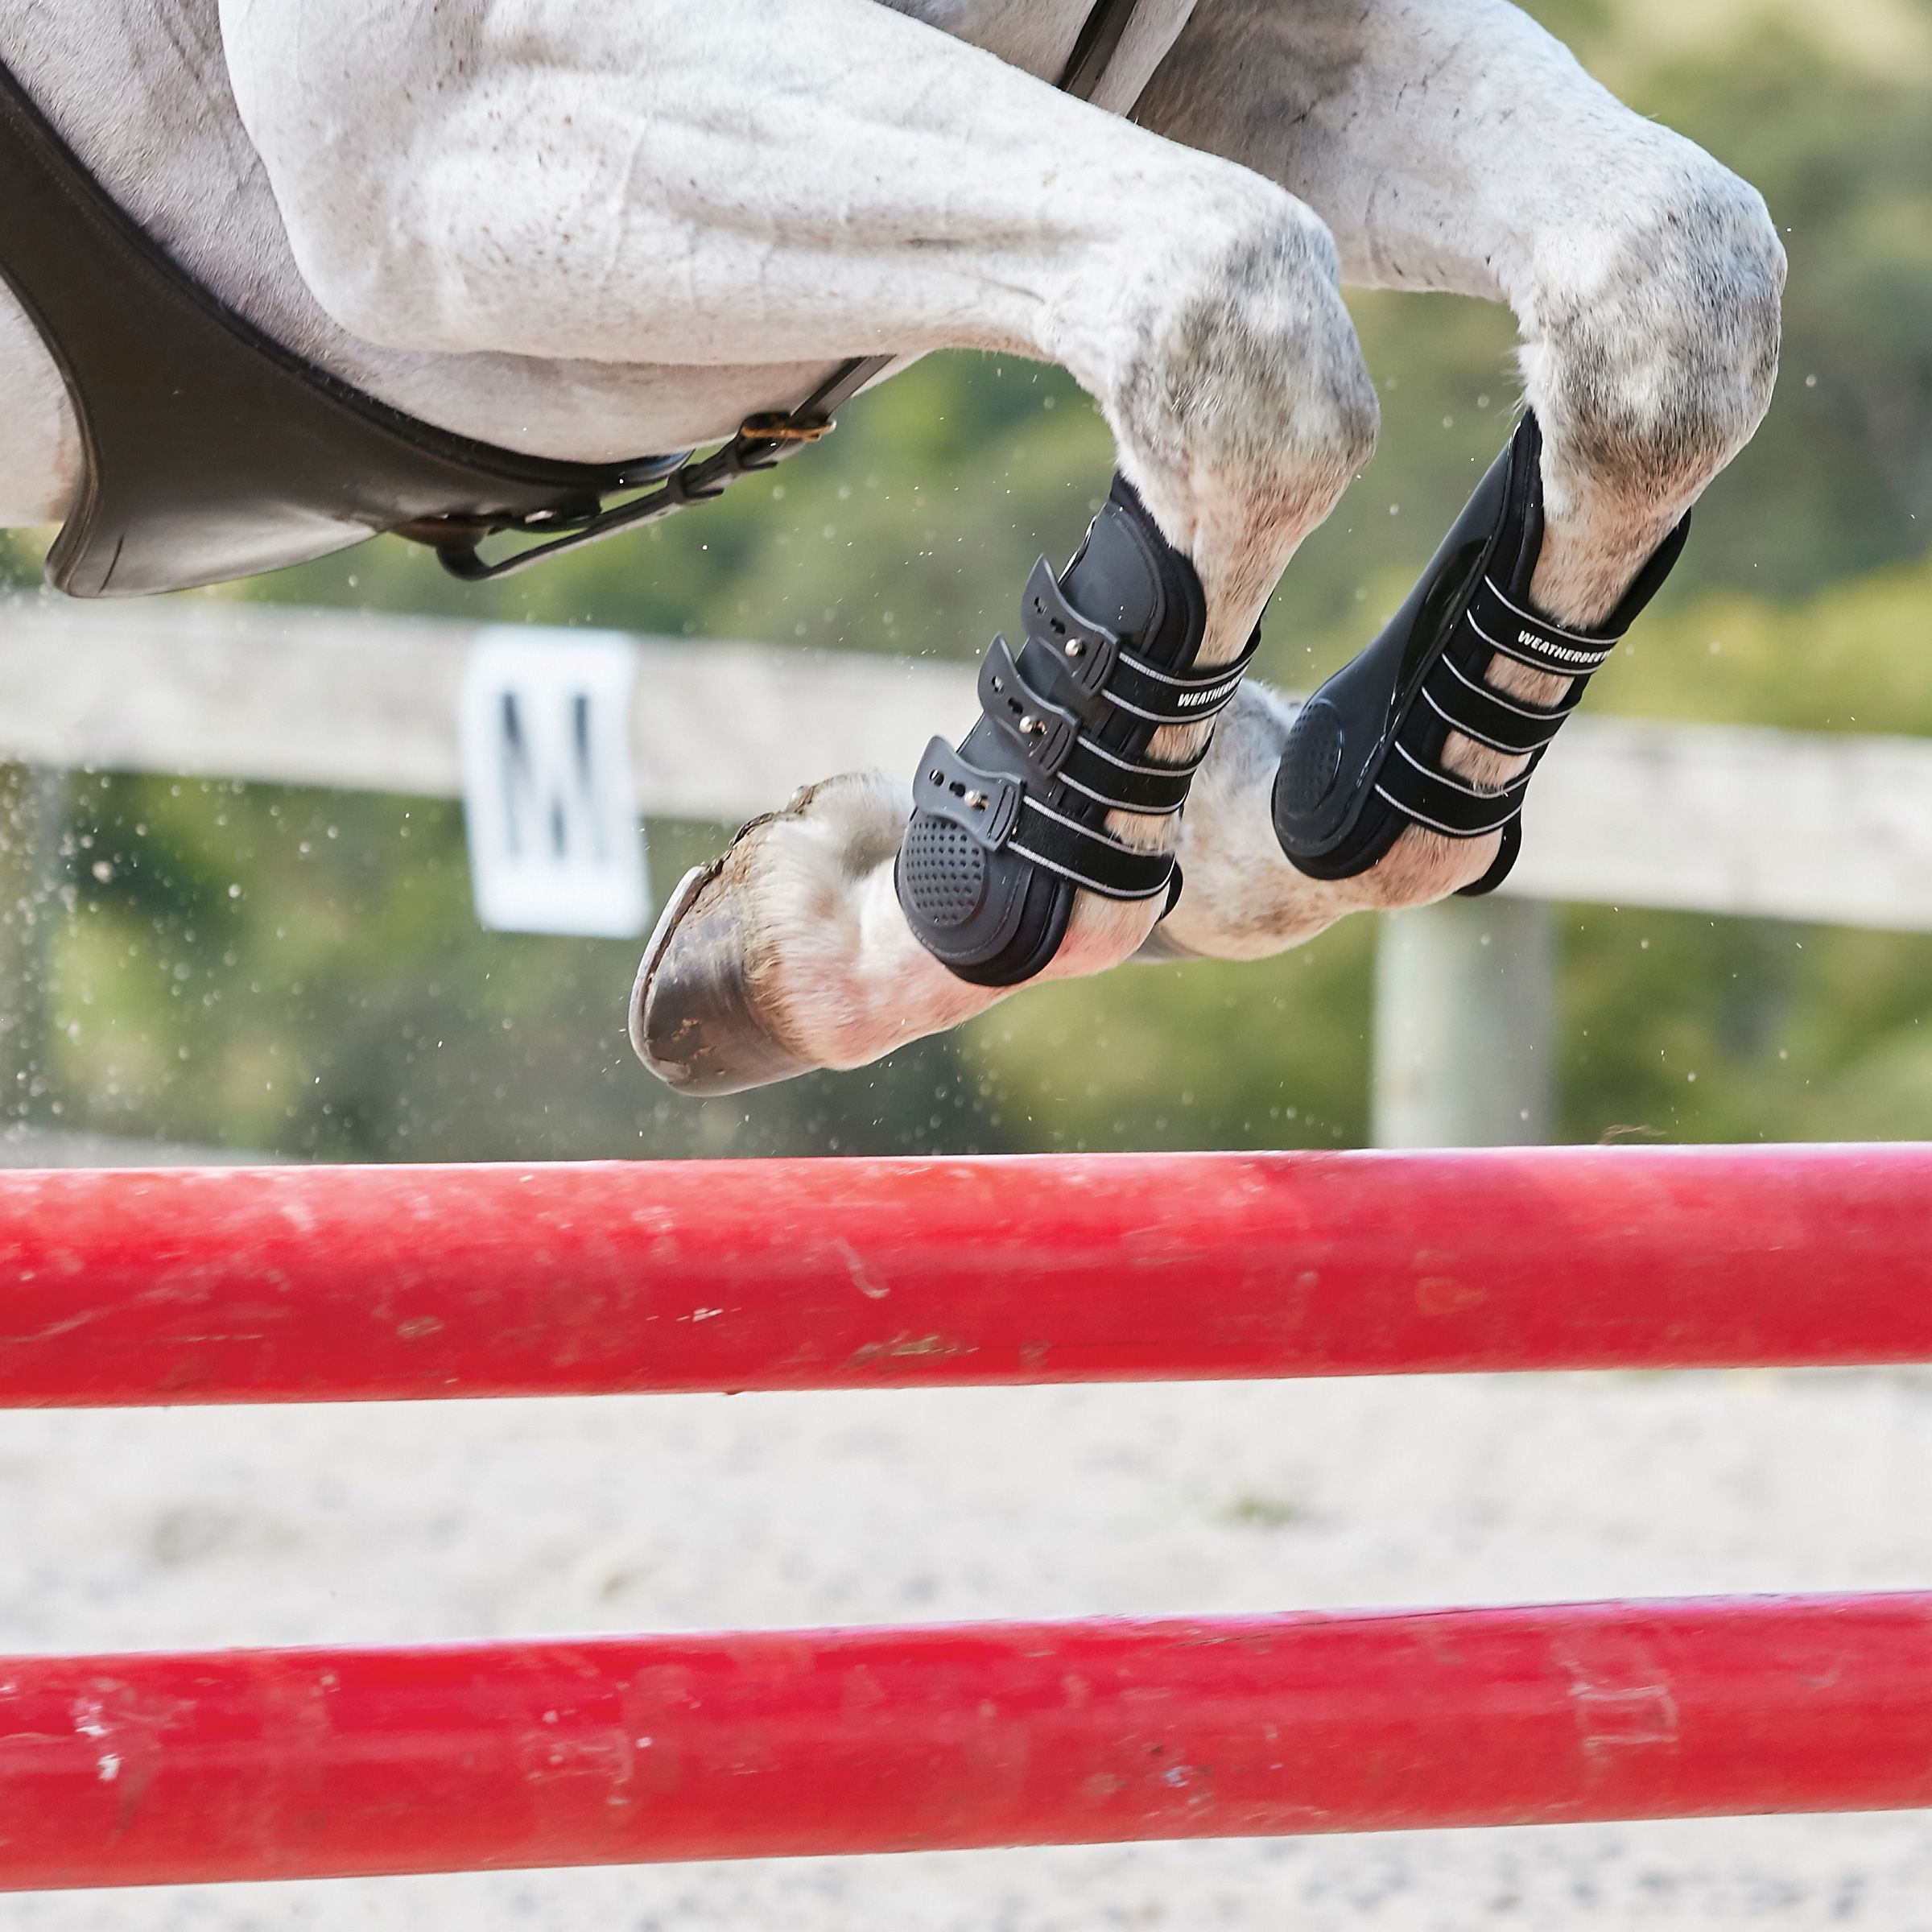 Does my horse need to wear boots?